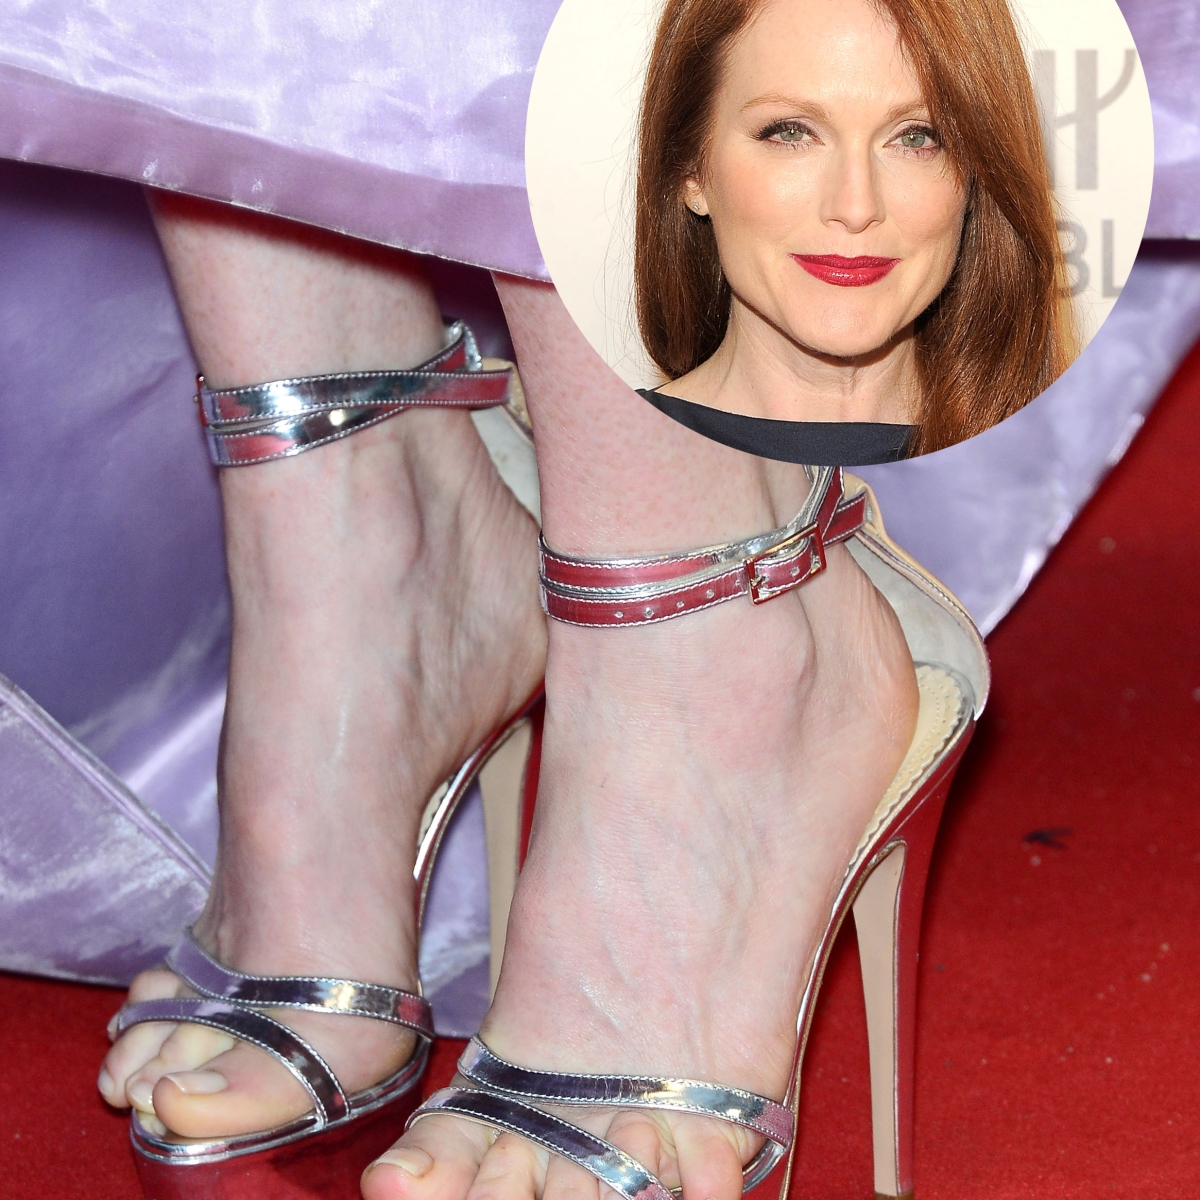 f7d97fc5b4 Amal Clooney Sports Painful-Looking Bunions — Plus More Stars With  Seriously Weird Feet - Life & Style